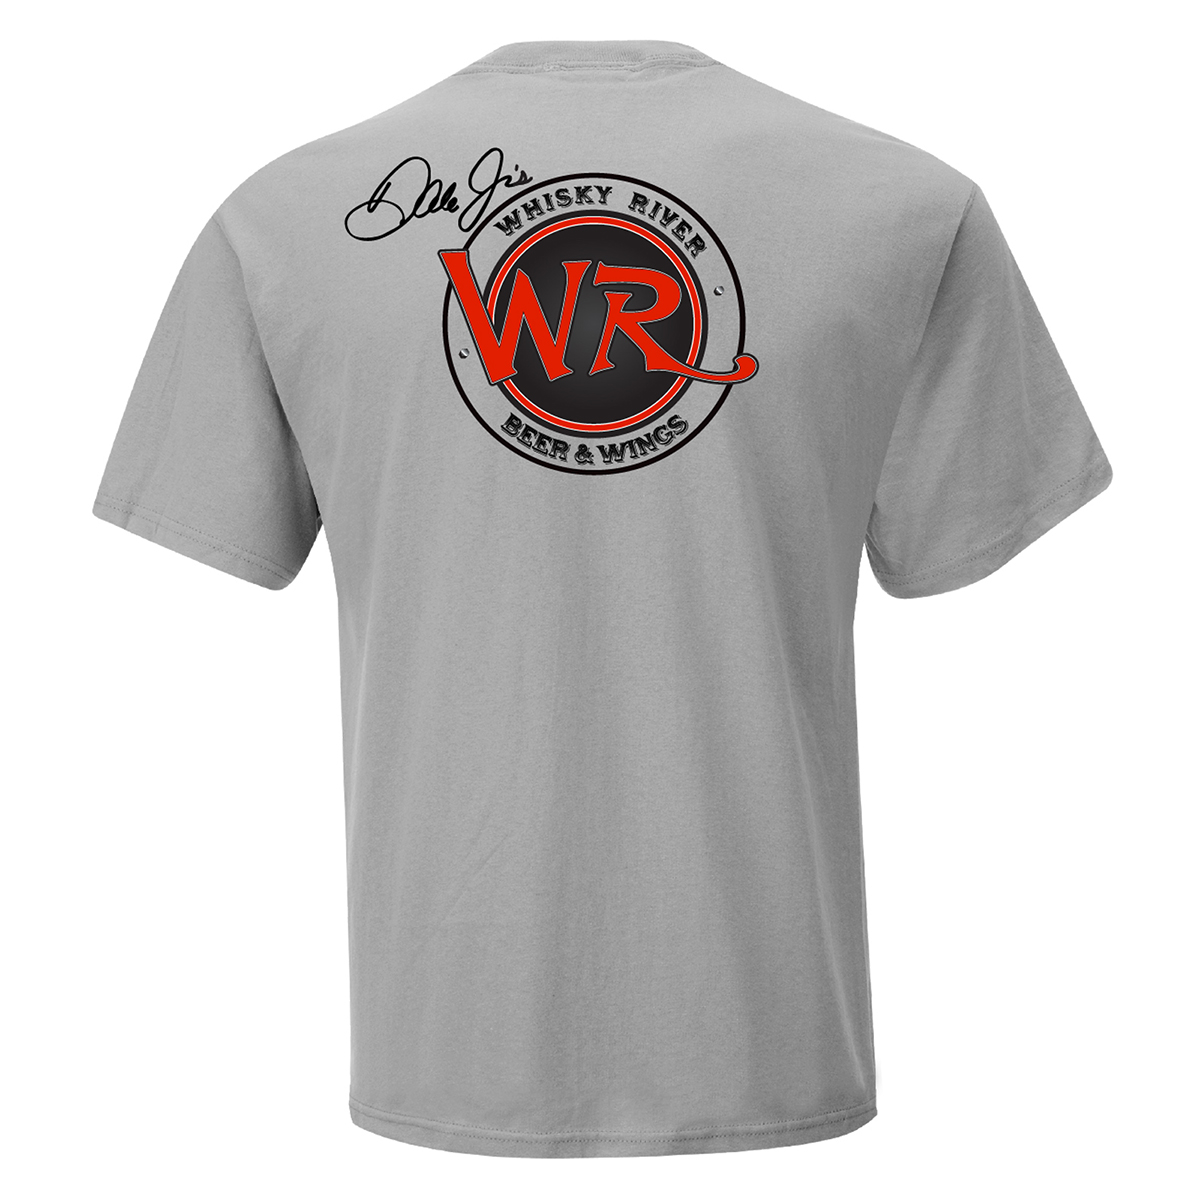 Whisky River T-shirt - Heather Grey